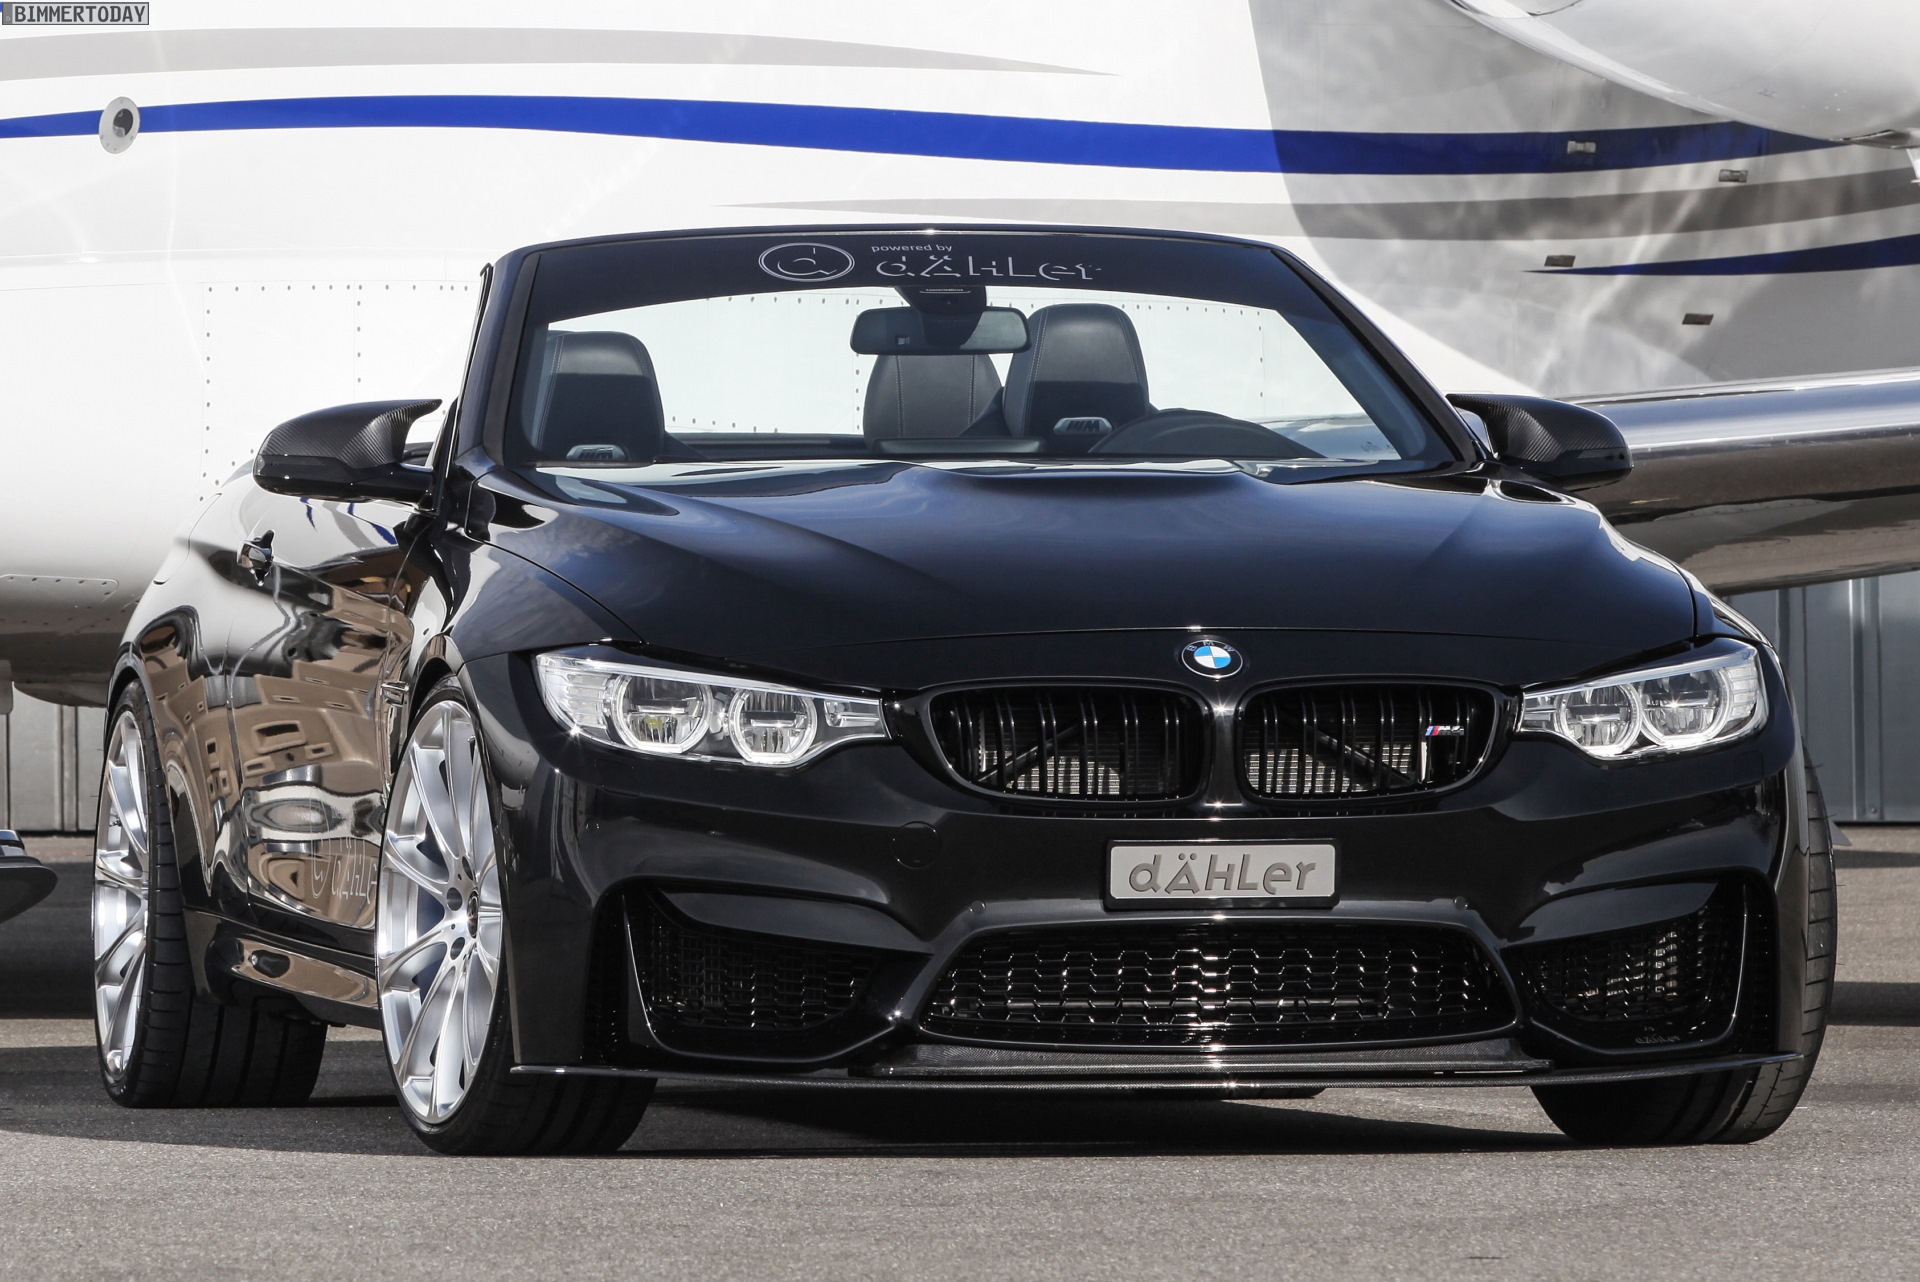 D 228 Hler Bmw M4 Convertible With Power Tuning To 540 Hp